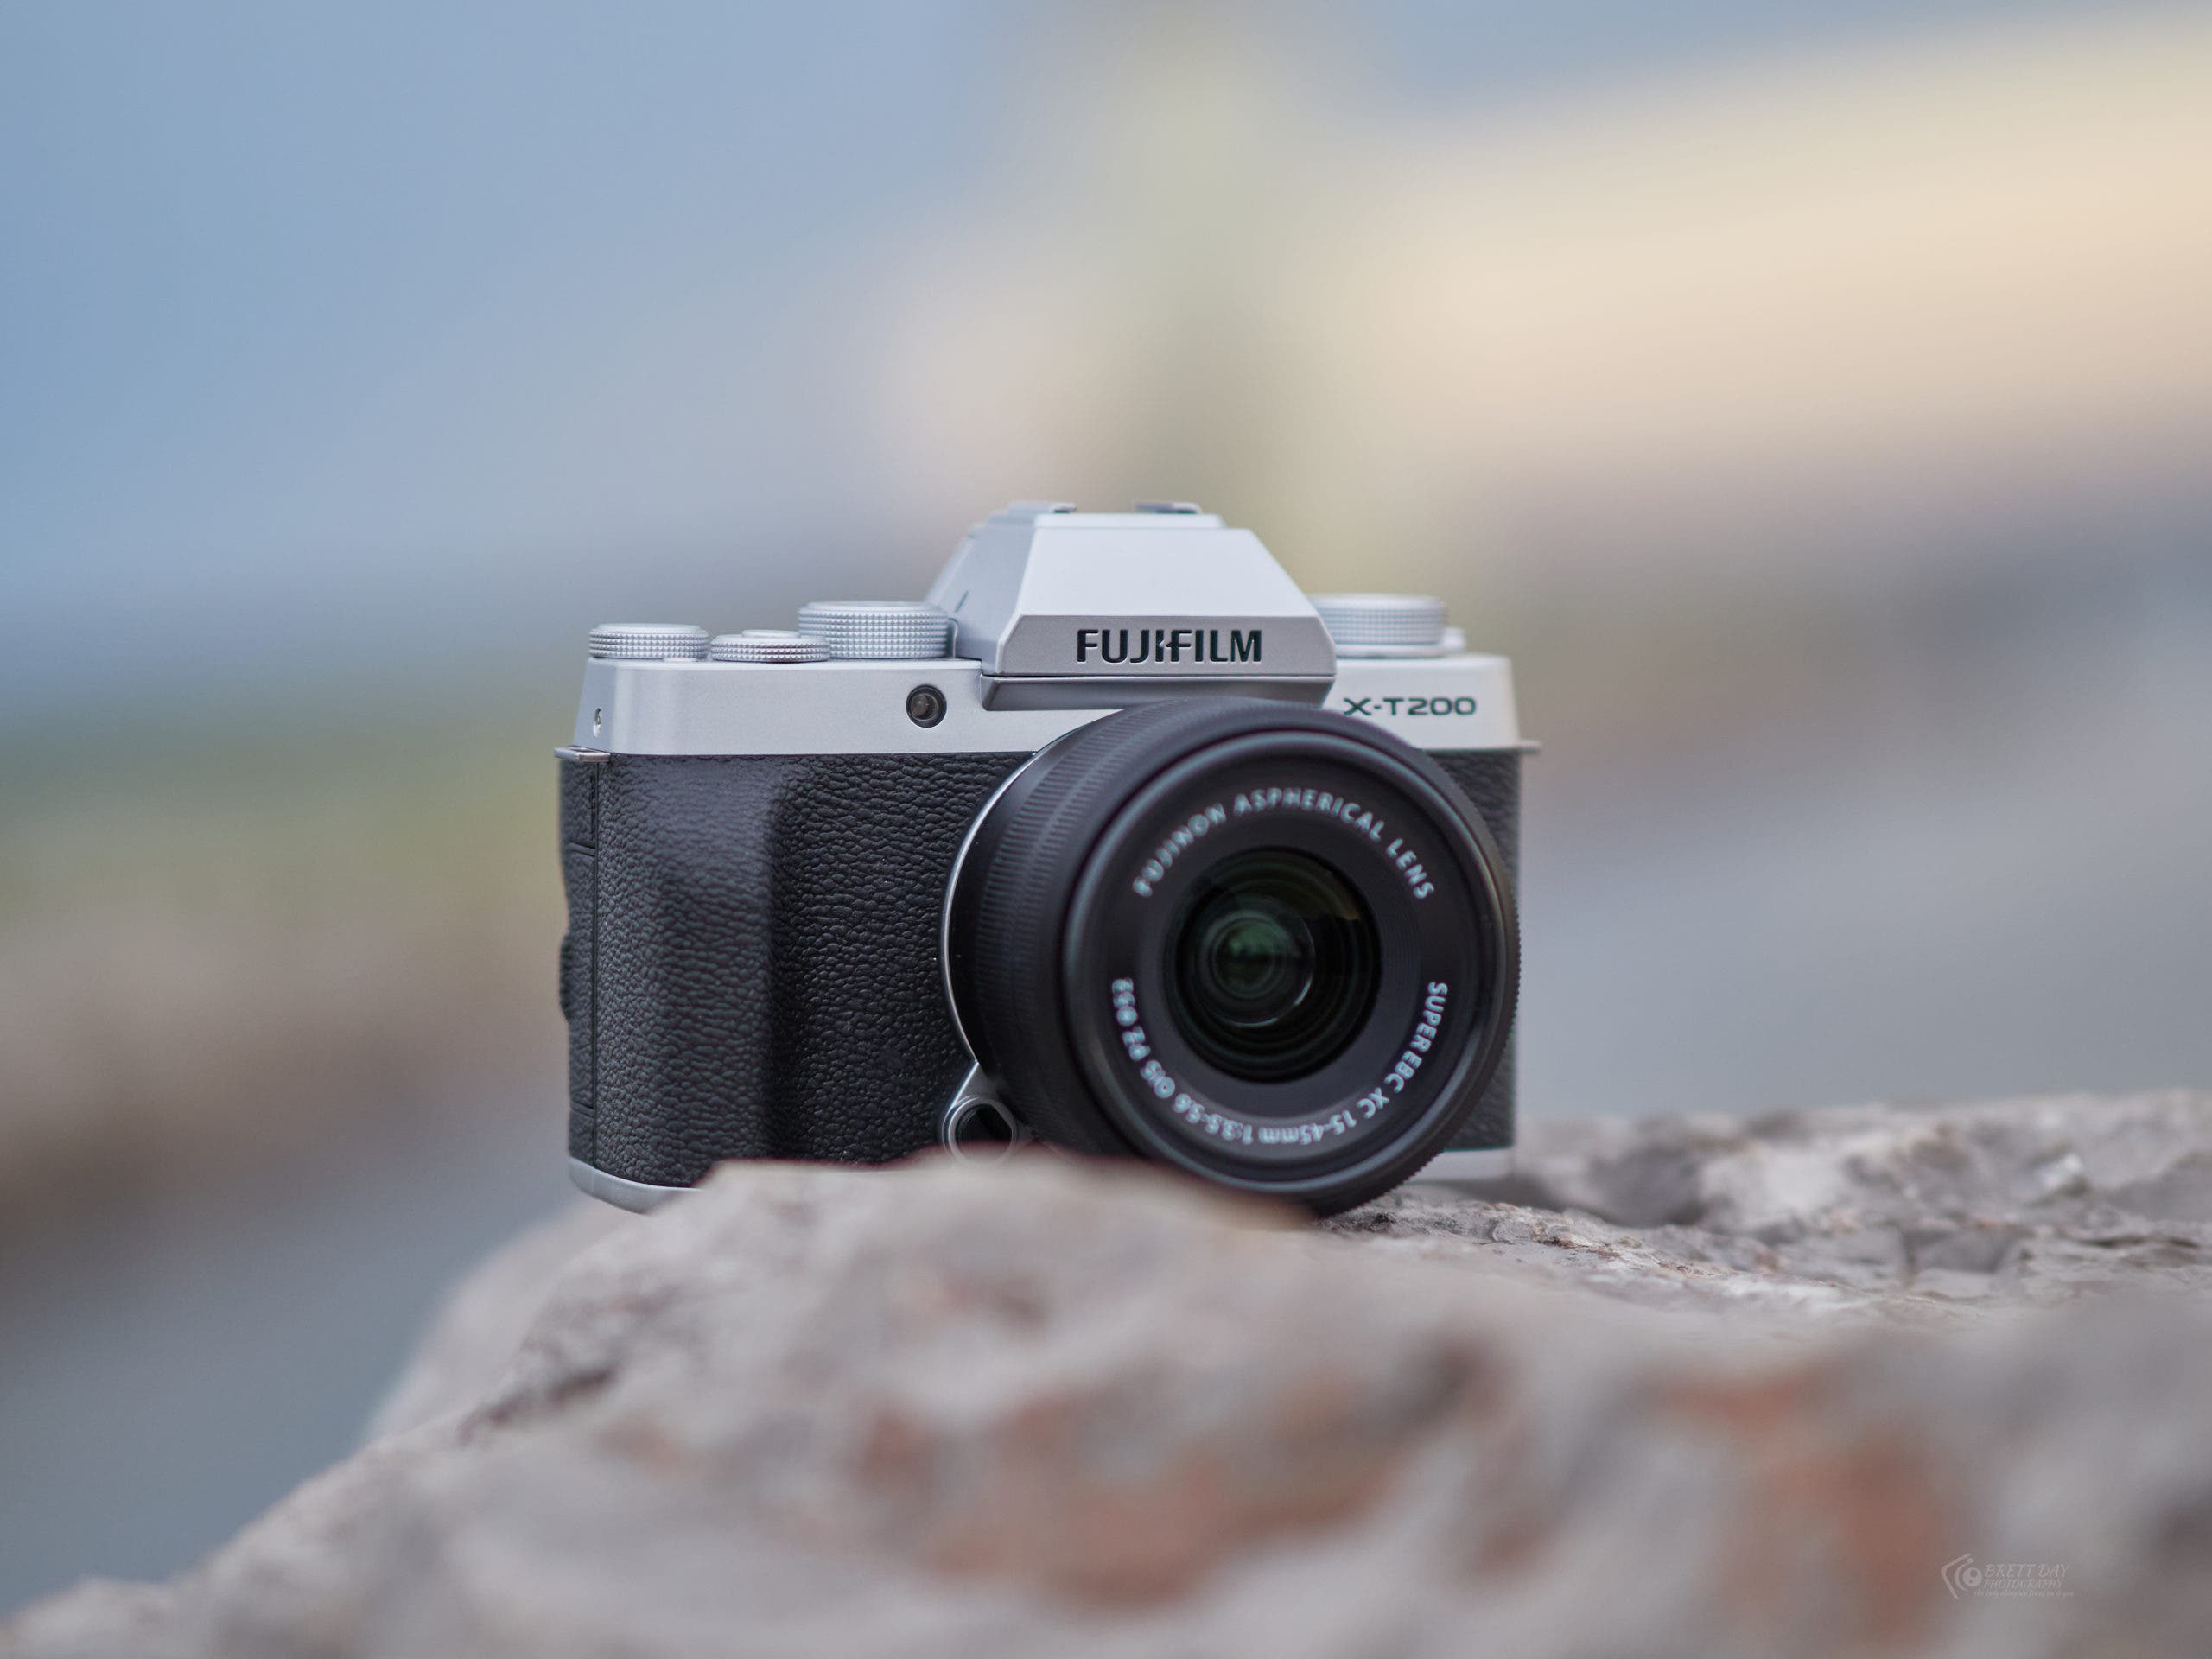 Deal Alert: The Excellent Fujifilm XT200 With Lens is Just $499.95! WOW!